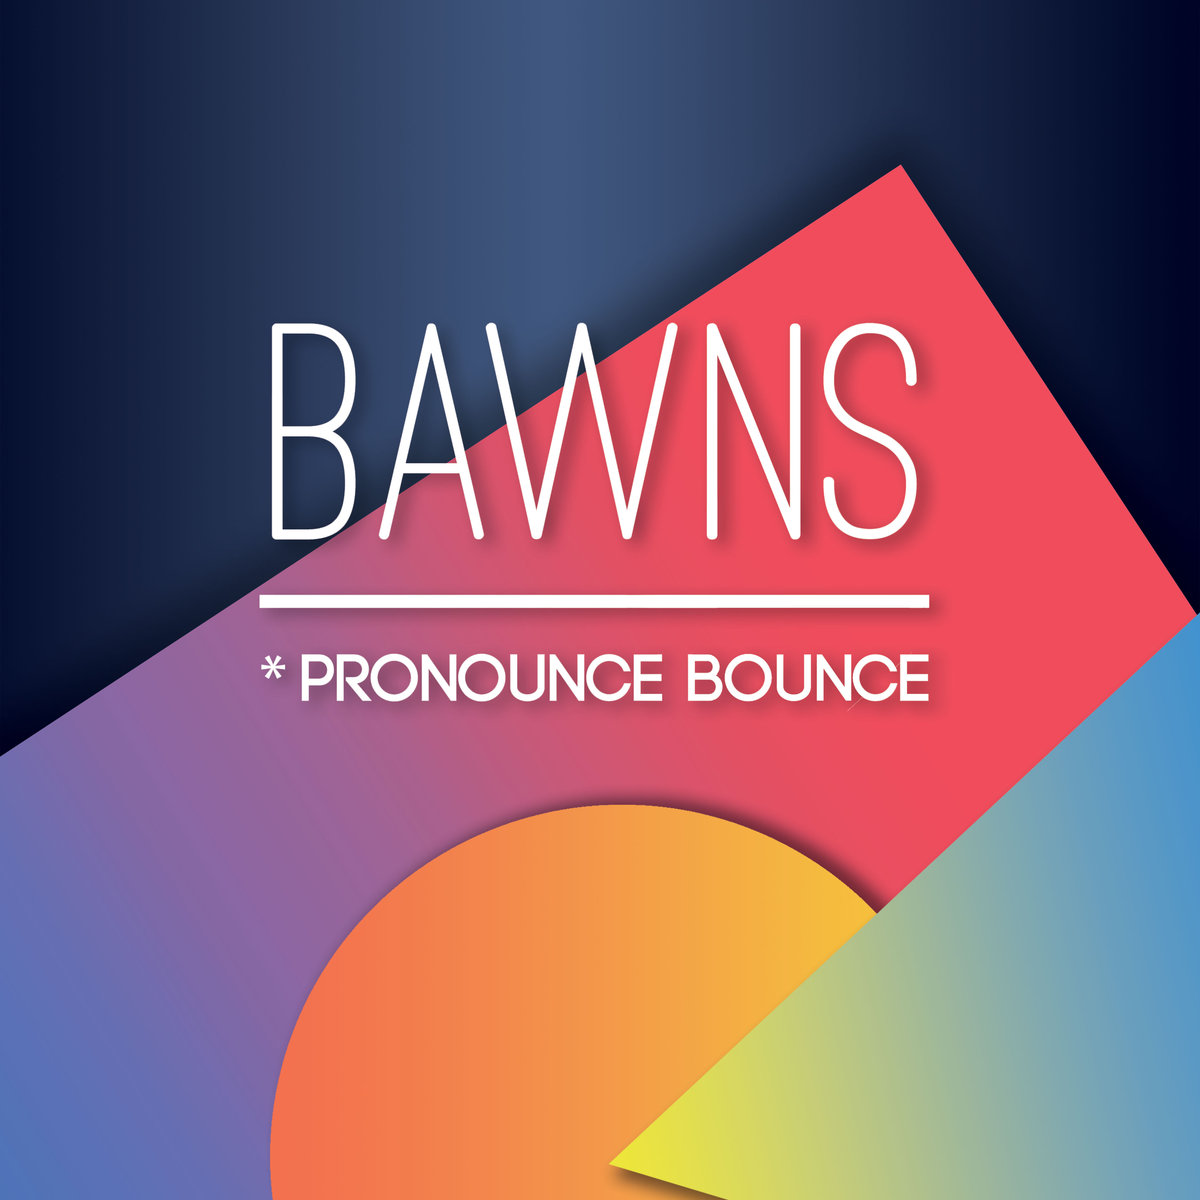 BAWNS : LE REMIX DE « CAWOOCHOO » PAR ZO EN FREE DOWNLOAD